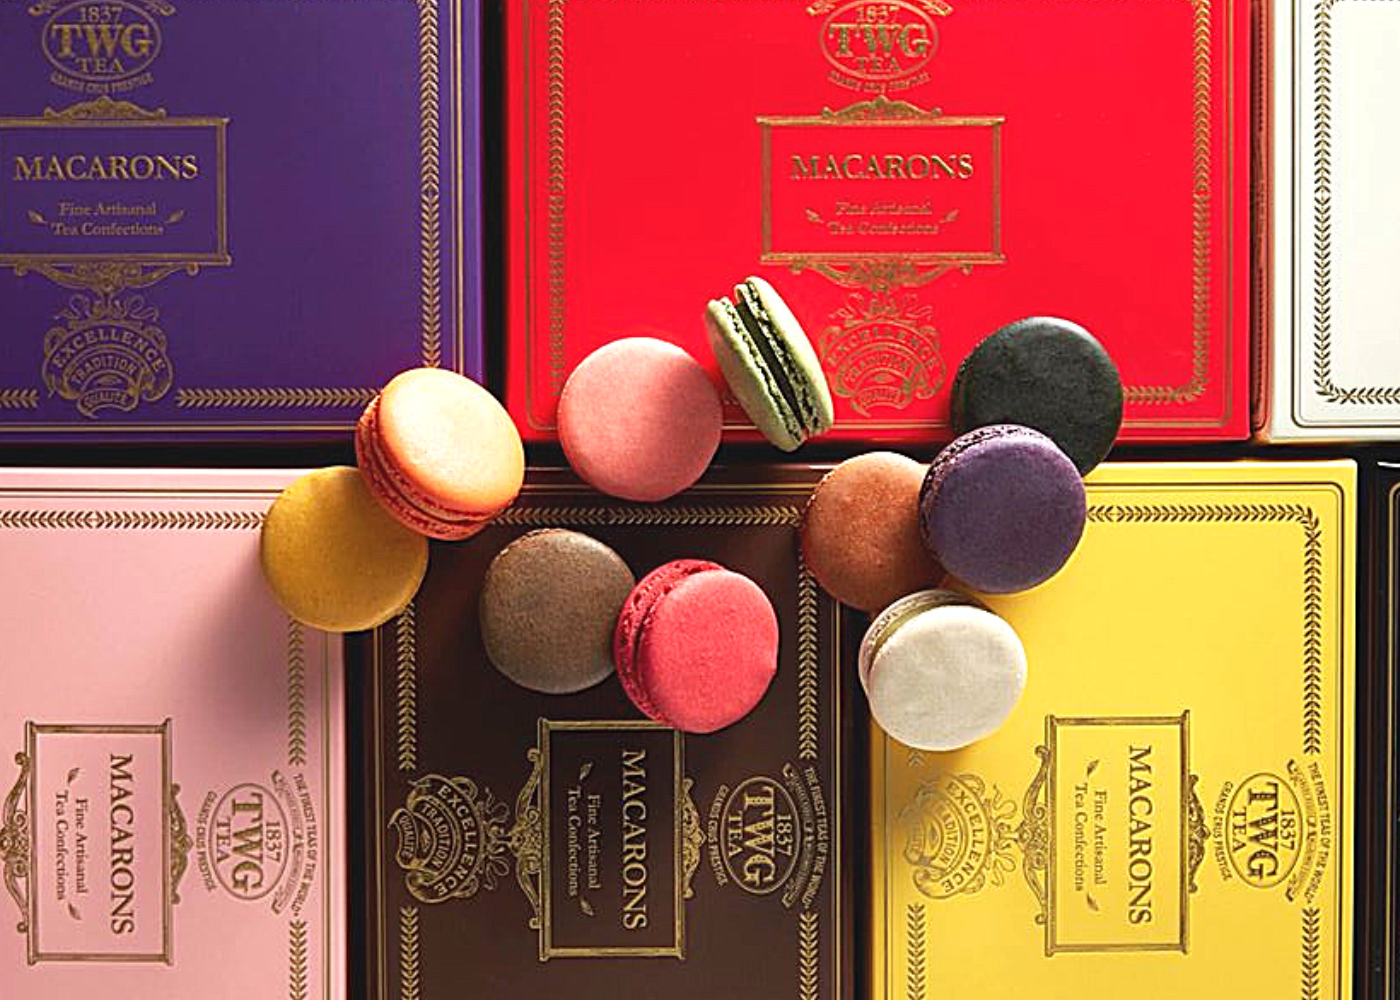 No need to hunt for macaron recipes when you can get the best macarons in Singapore delivered to you: TWG Tea